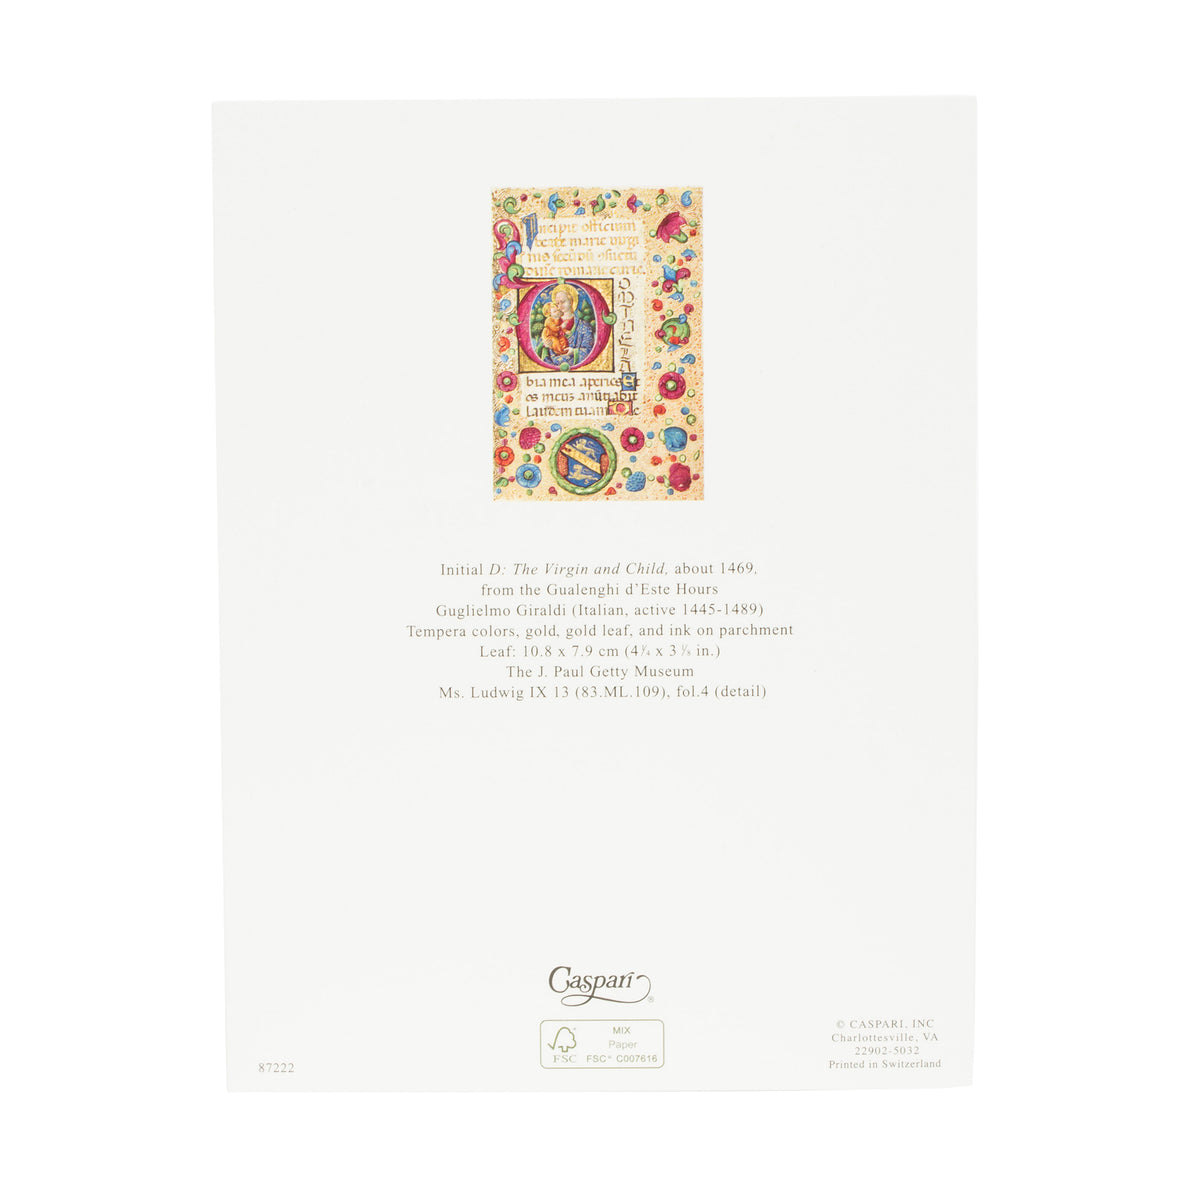 Getty Boxed Christmas Cards-Virgin and Child, view of back of card with information about inspiration artwork | Getty Store